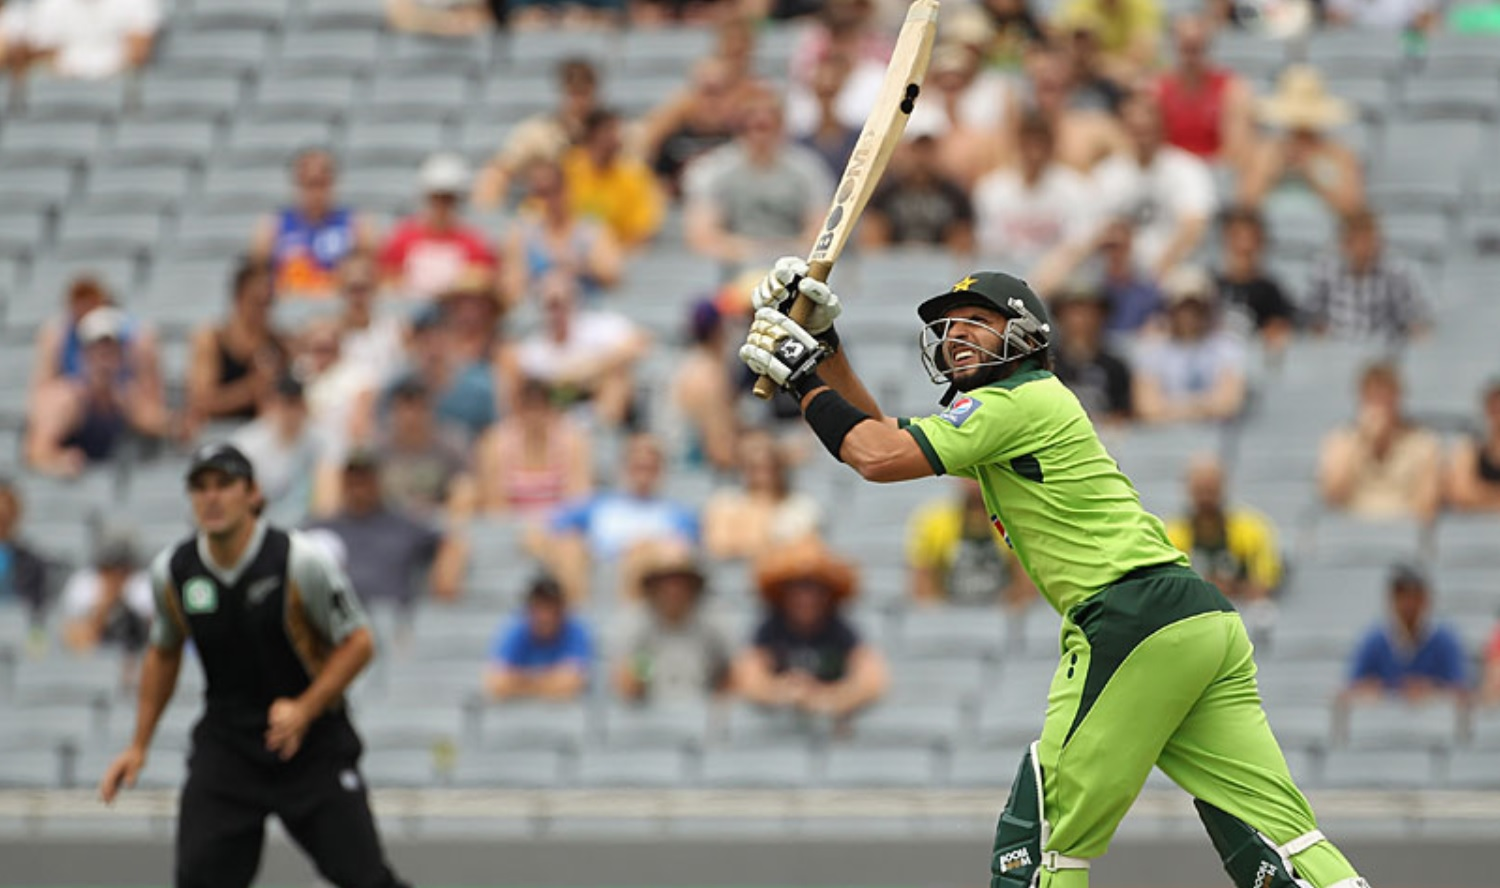 Afridi hit most sixes in ODI cricket matches